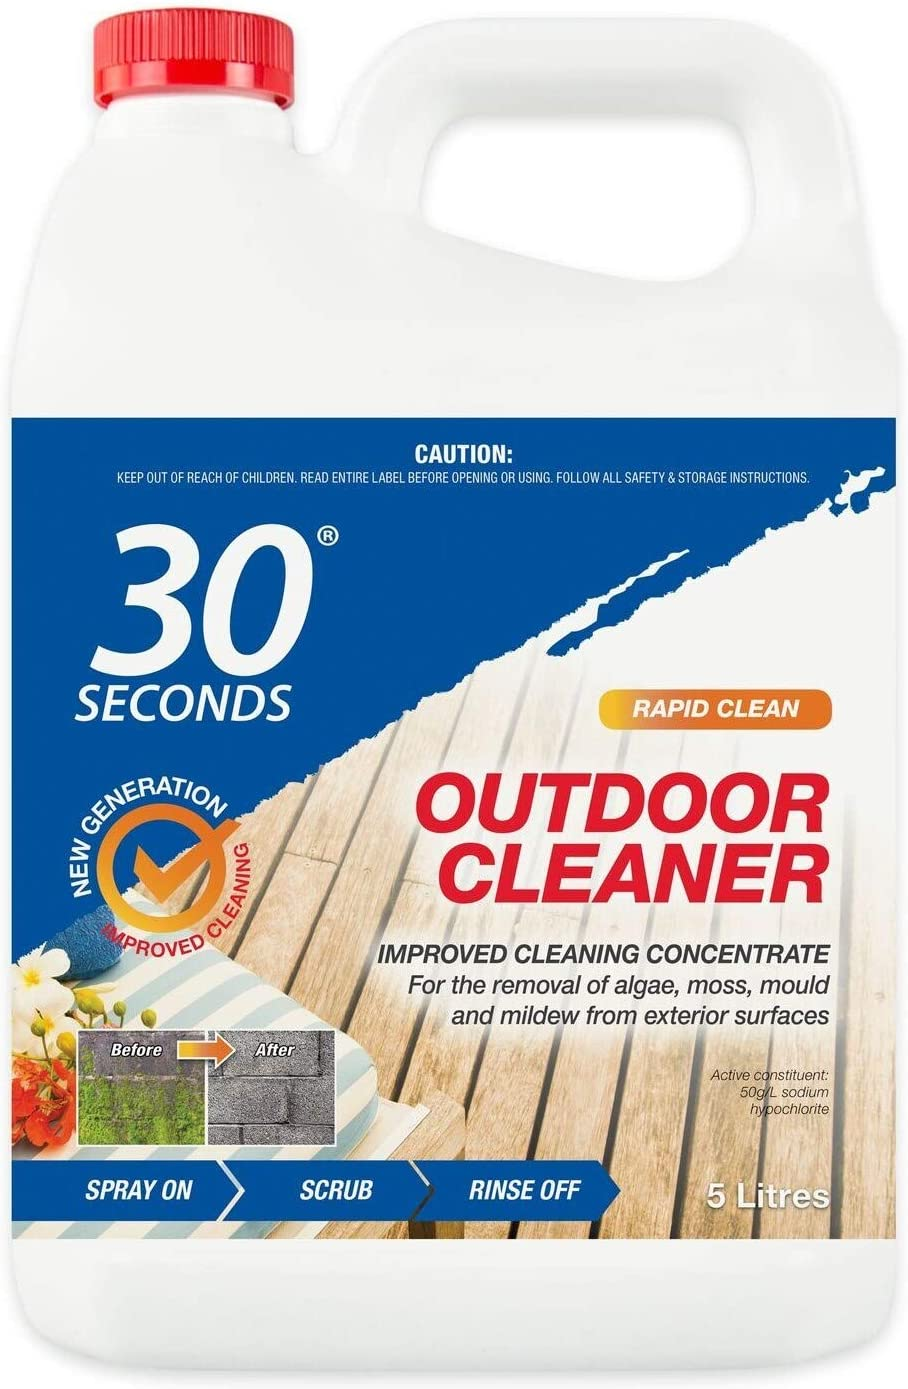 30 SECONDS Outdoor Cleaner, 1 Gallon - Concentrate